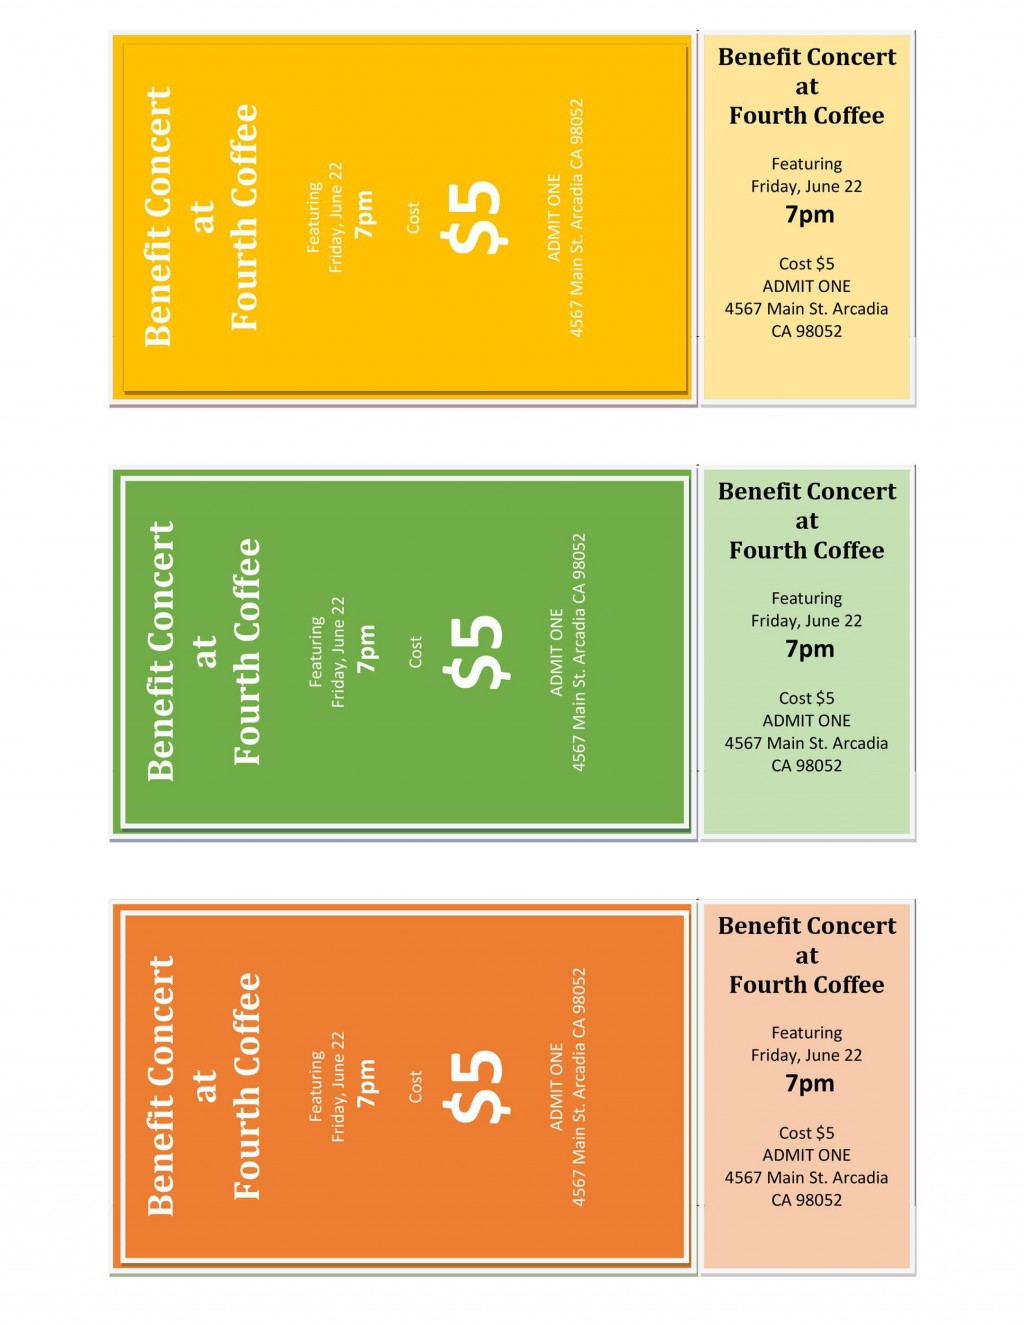 004 Wondrou Fundraiser Ticket Template Free Picture  Printable Download Car WashLarge